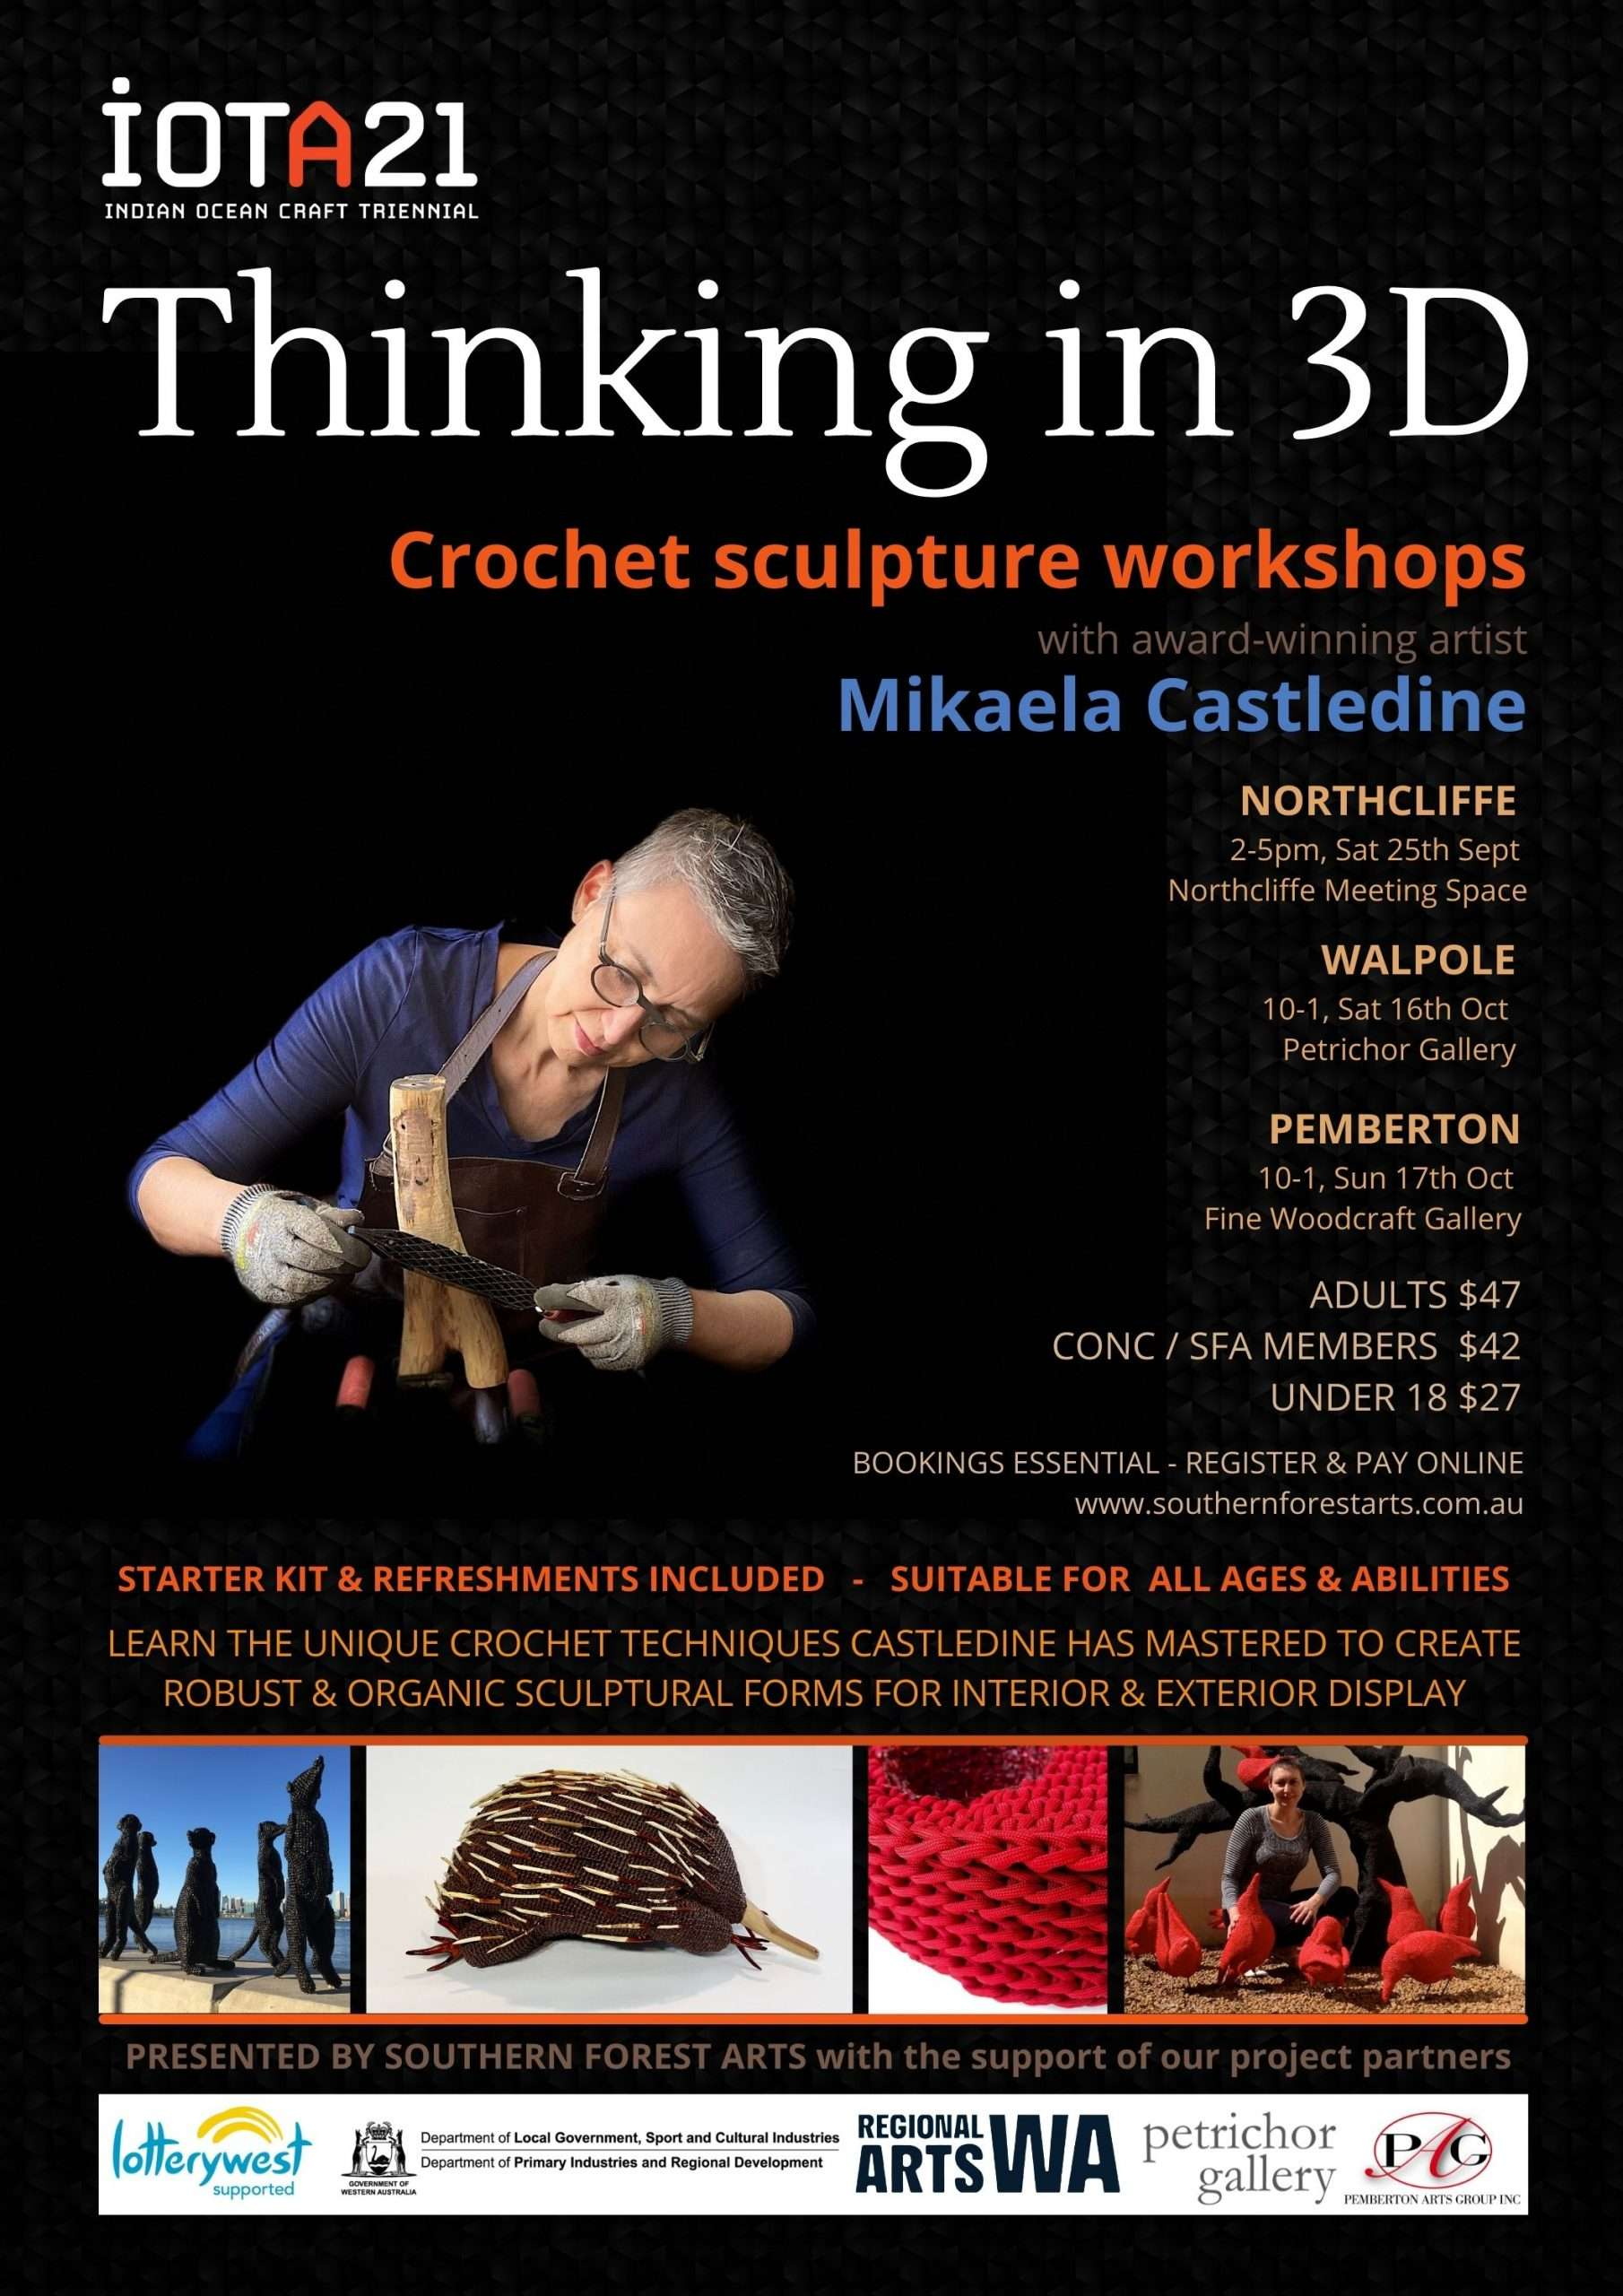 Thinking in 3D workshop with Mikaela Castledine